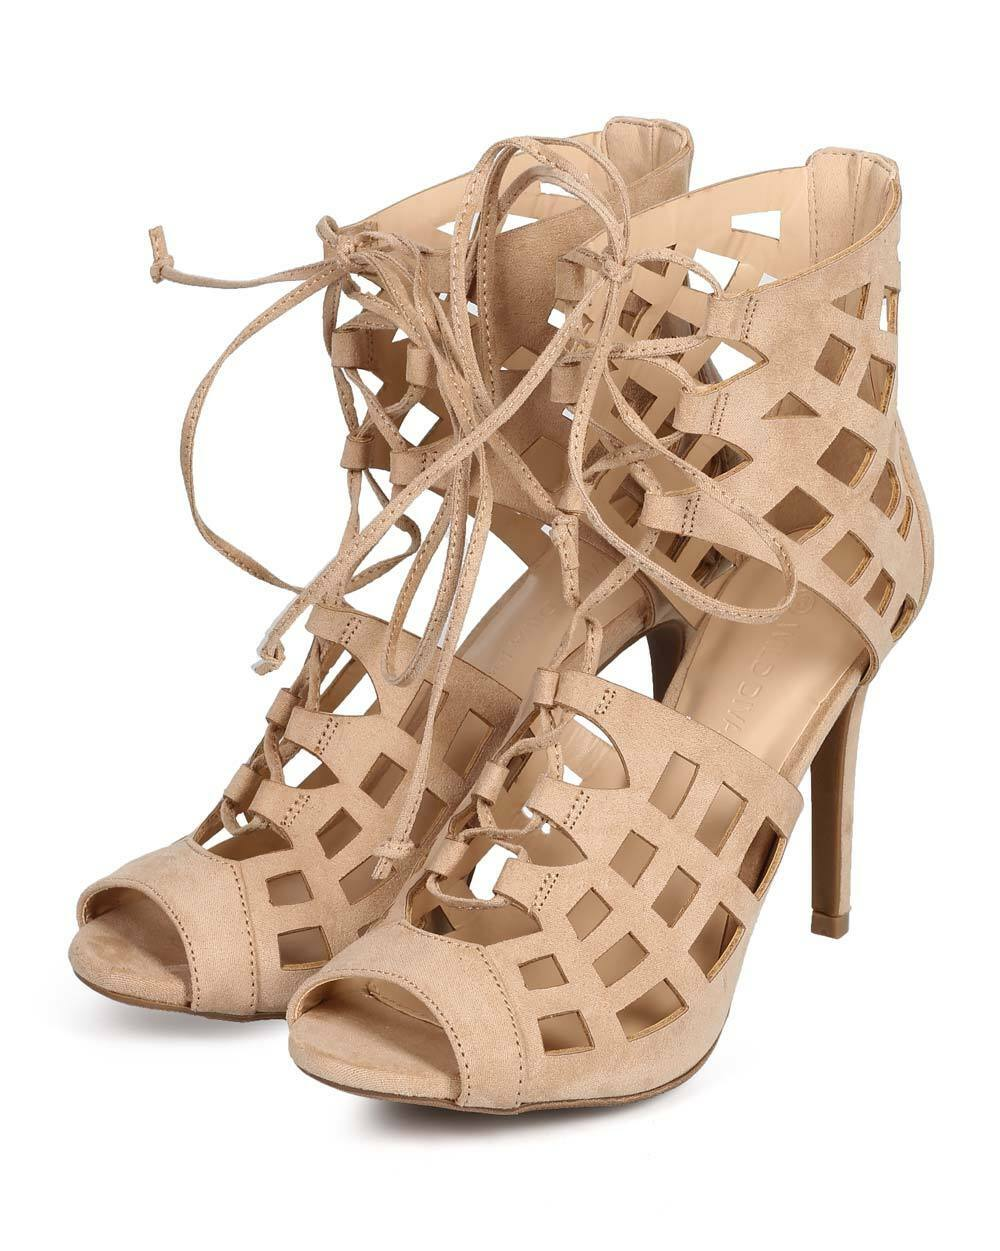 New Suede Women Wild Diva Berlin61 Suede New Peep Toe Gilly Tie Hollow Out Stiletto Sandal b28d7c